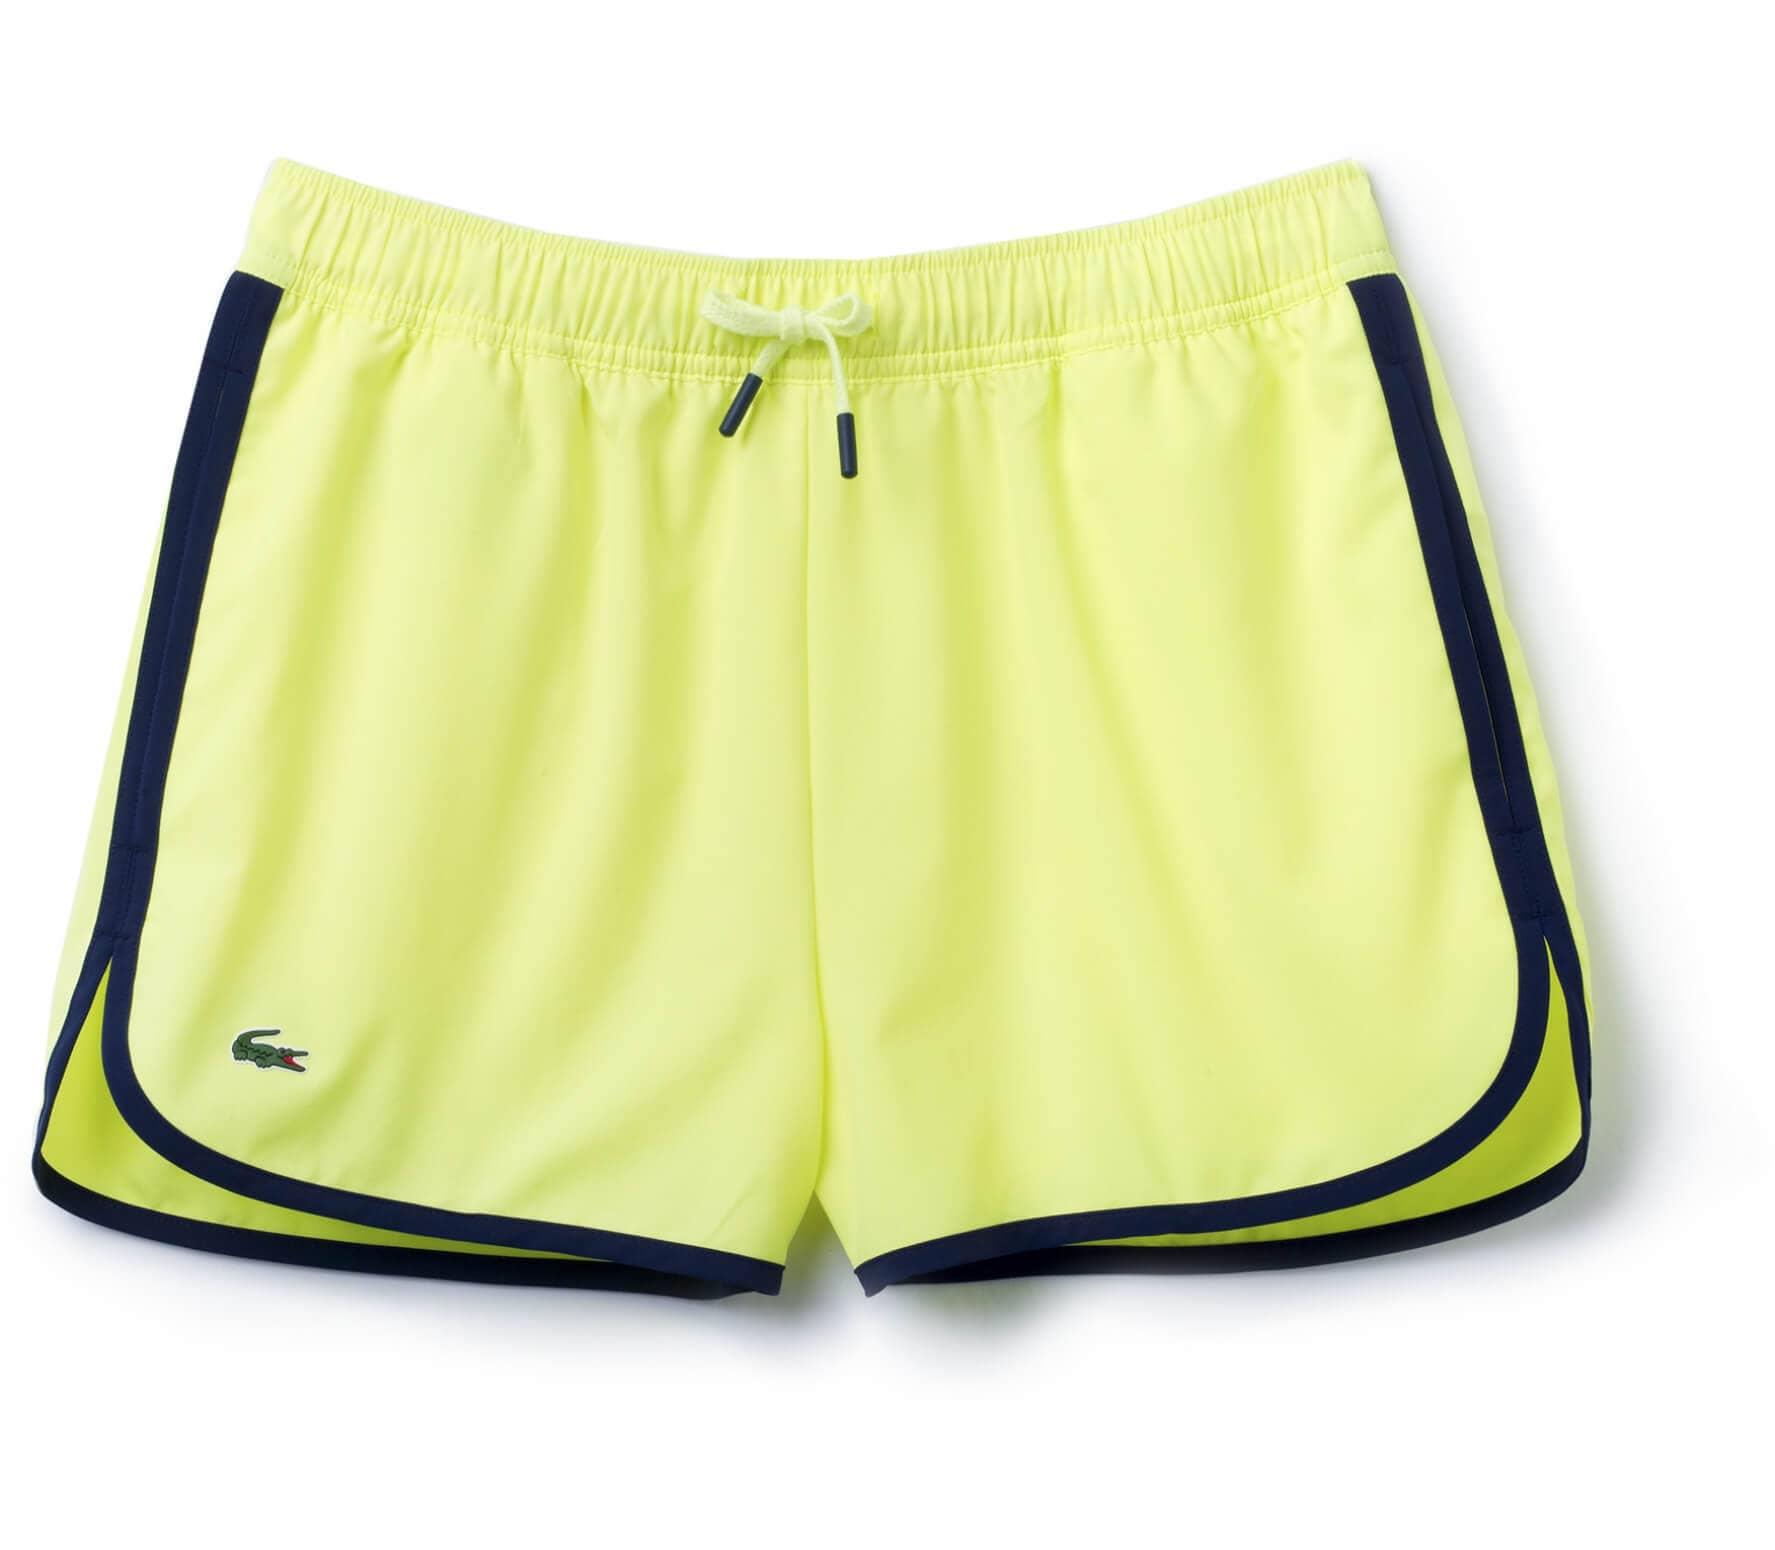 Lacoste - women s tennis shorts (yellow dark blue) - buy it at the ... 89f85a3e577